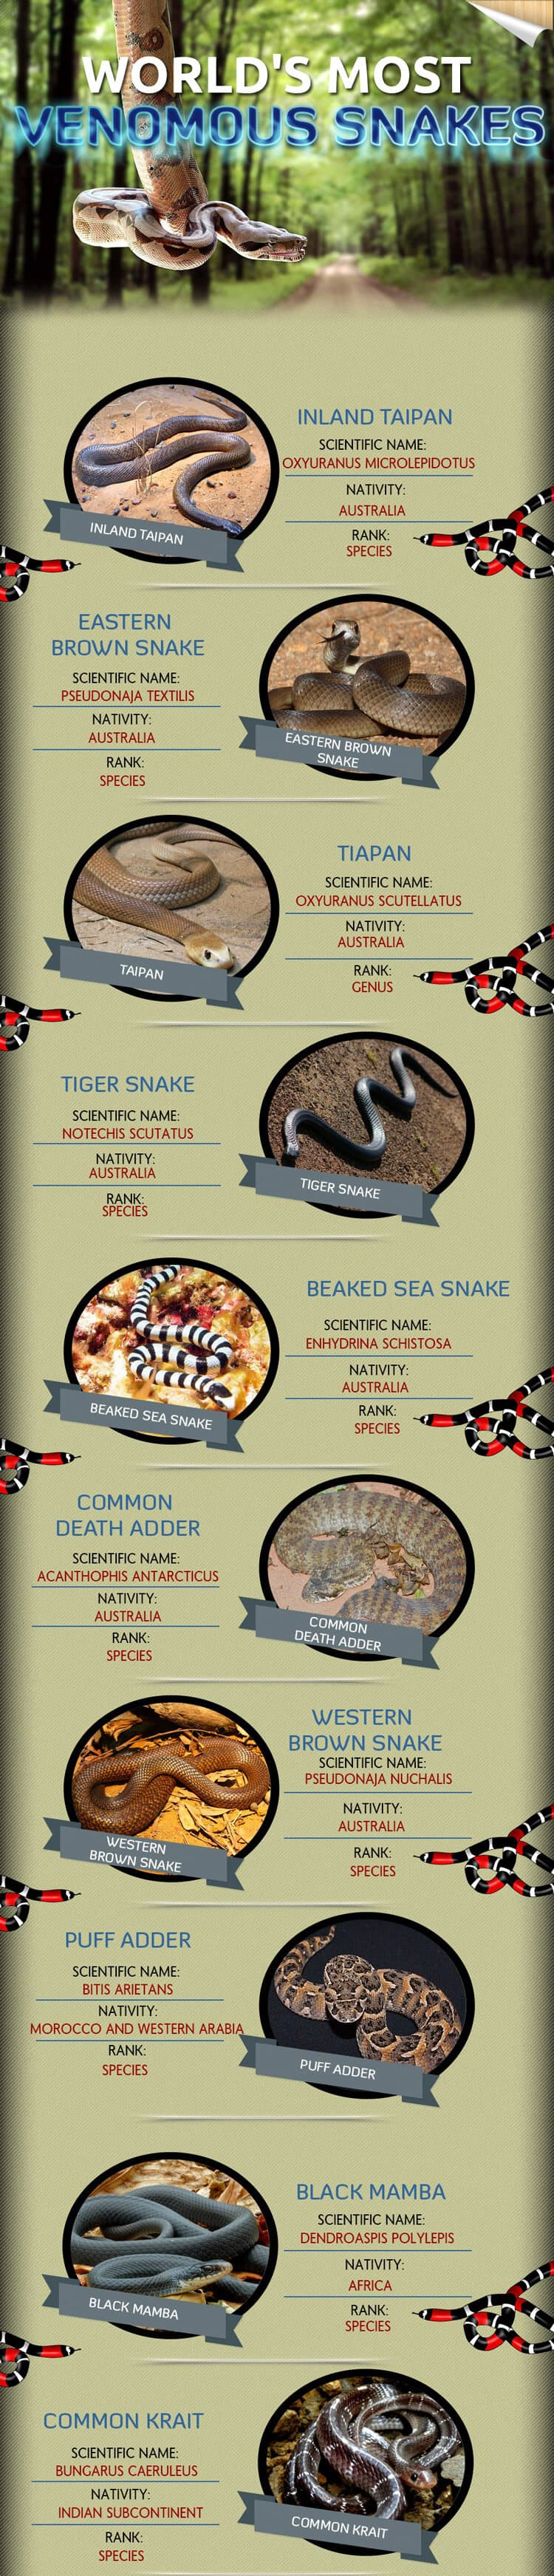 Top 10 Most Venomous Snakes in The World - The Survival Life